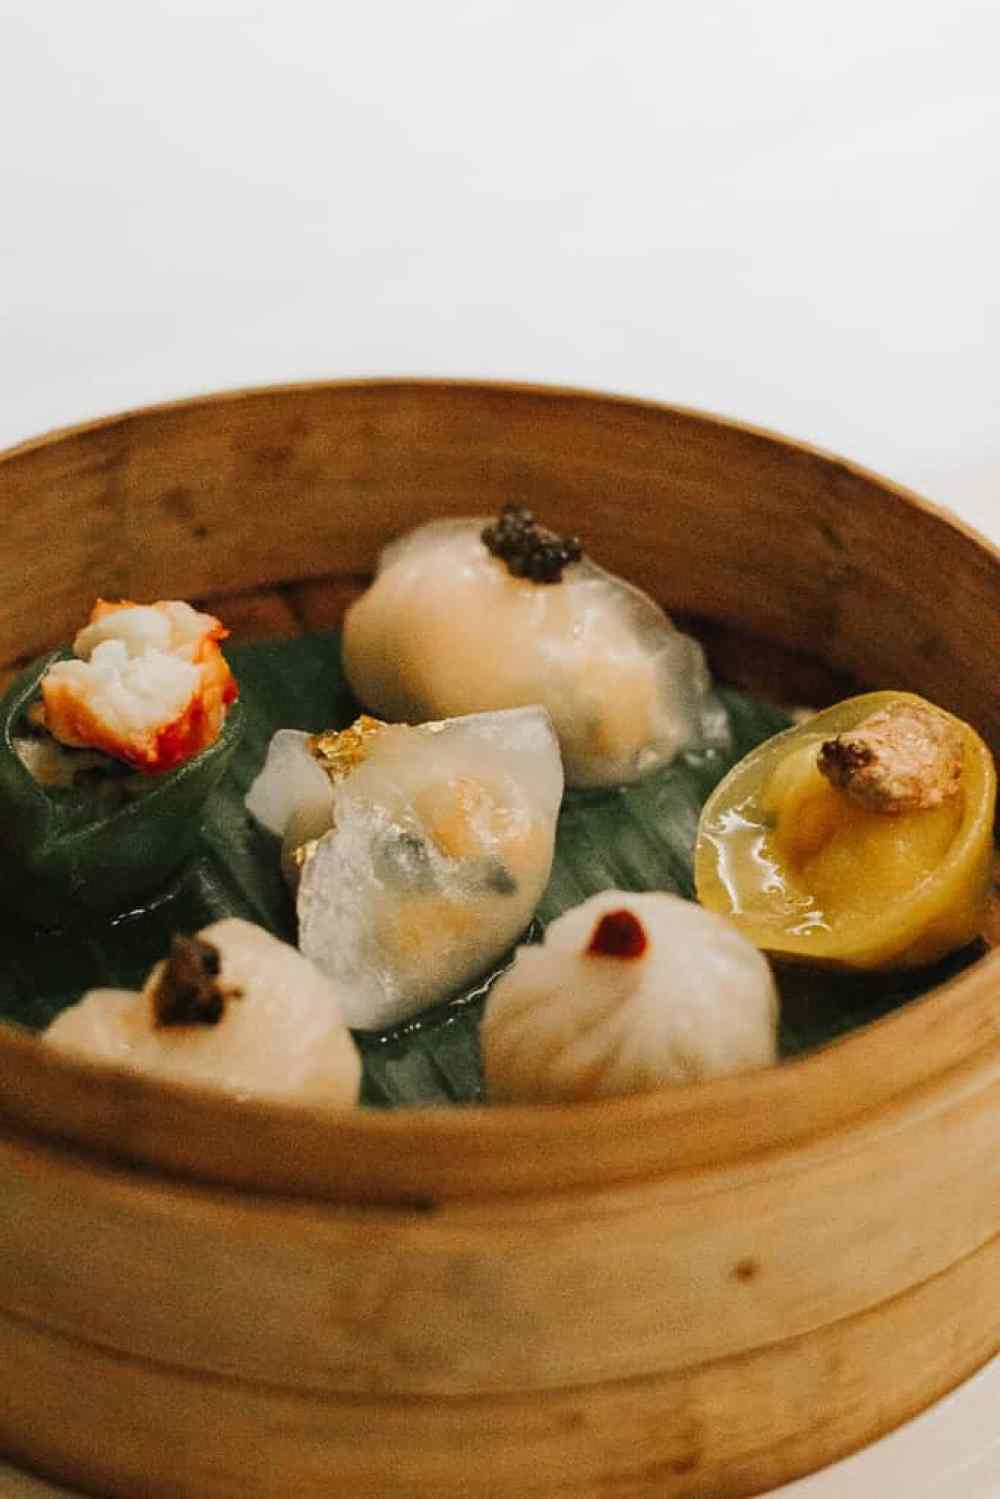 Chai Wu | Exotic Fine Dining Asian Restaurant at Harrods